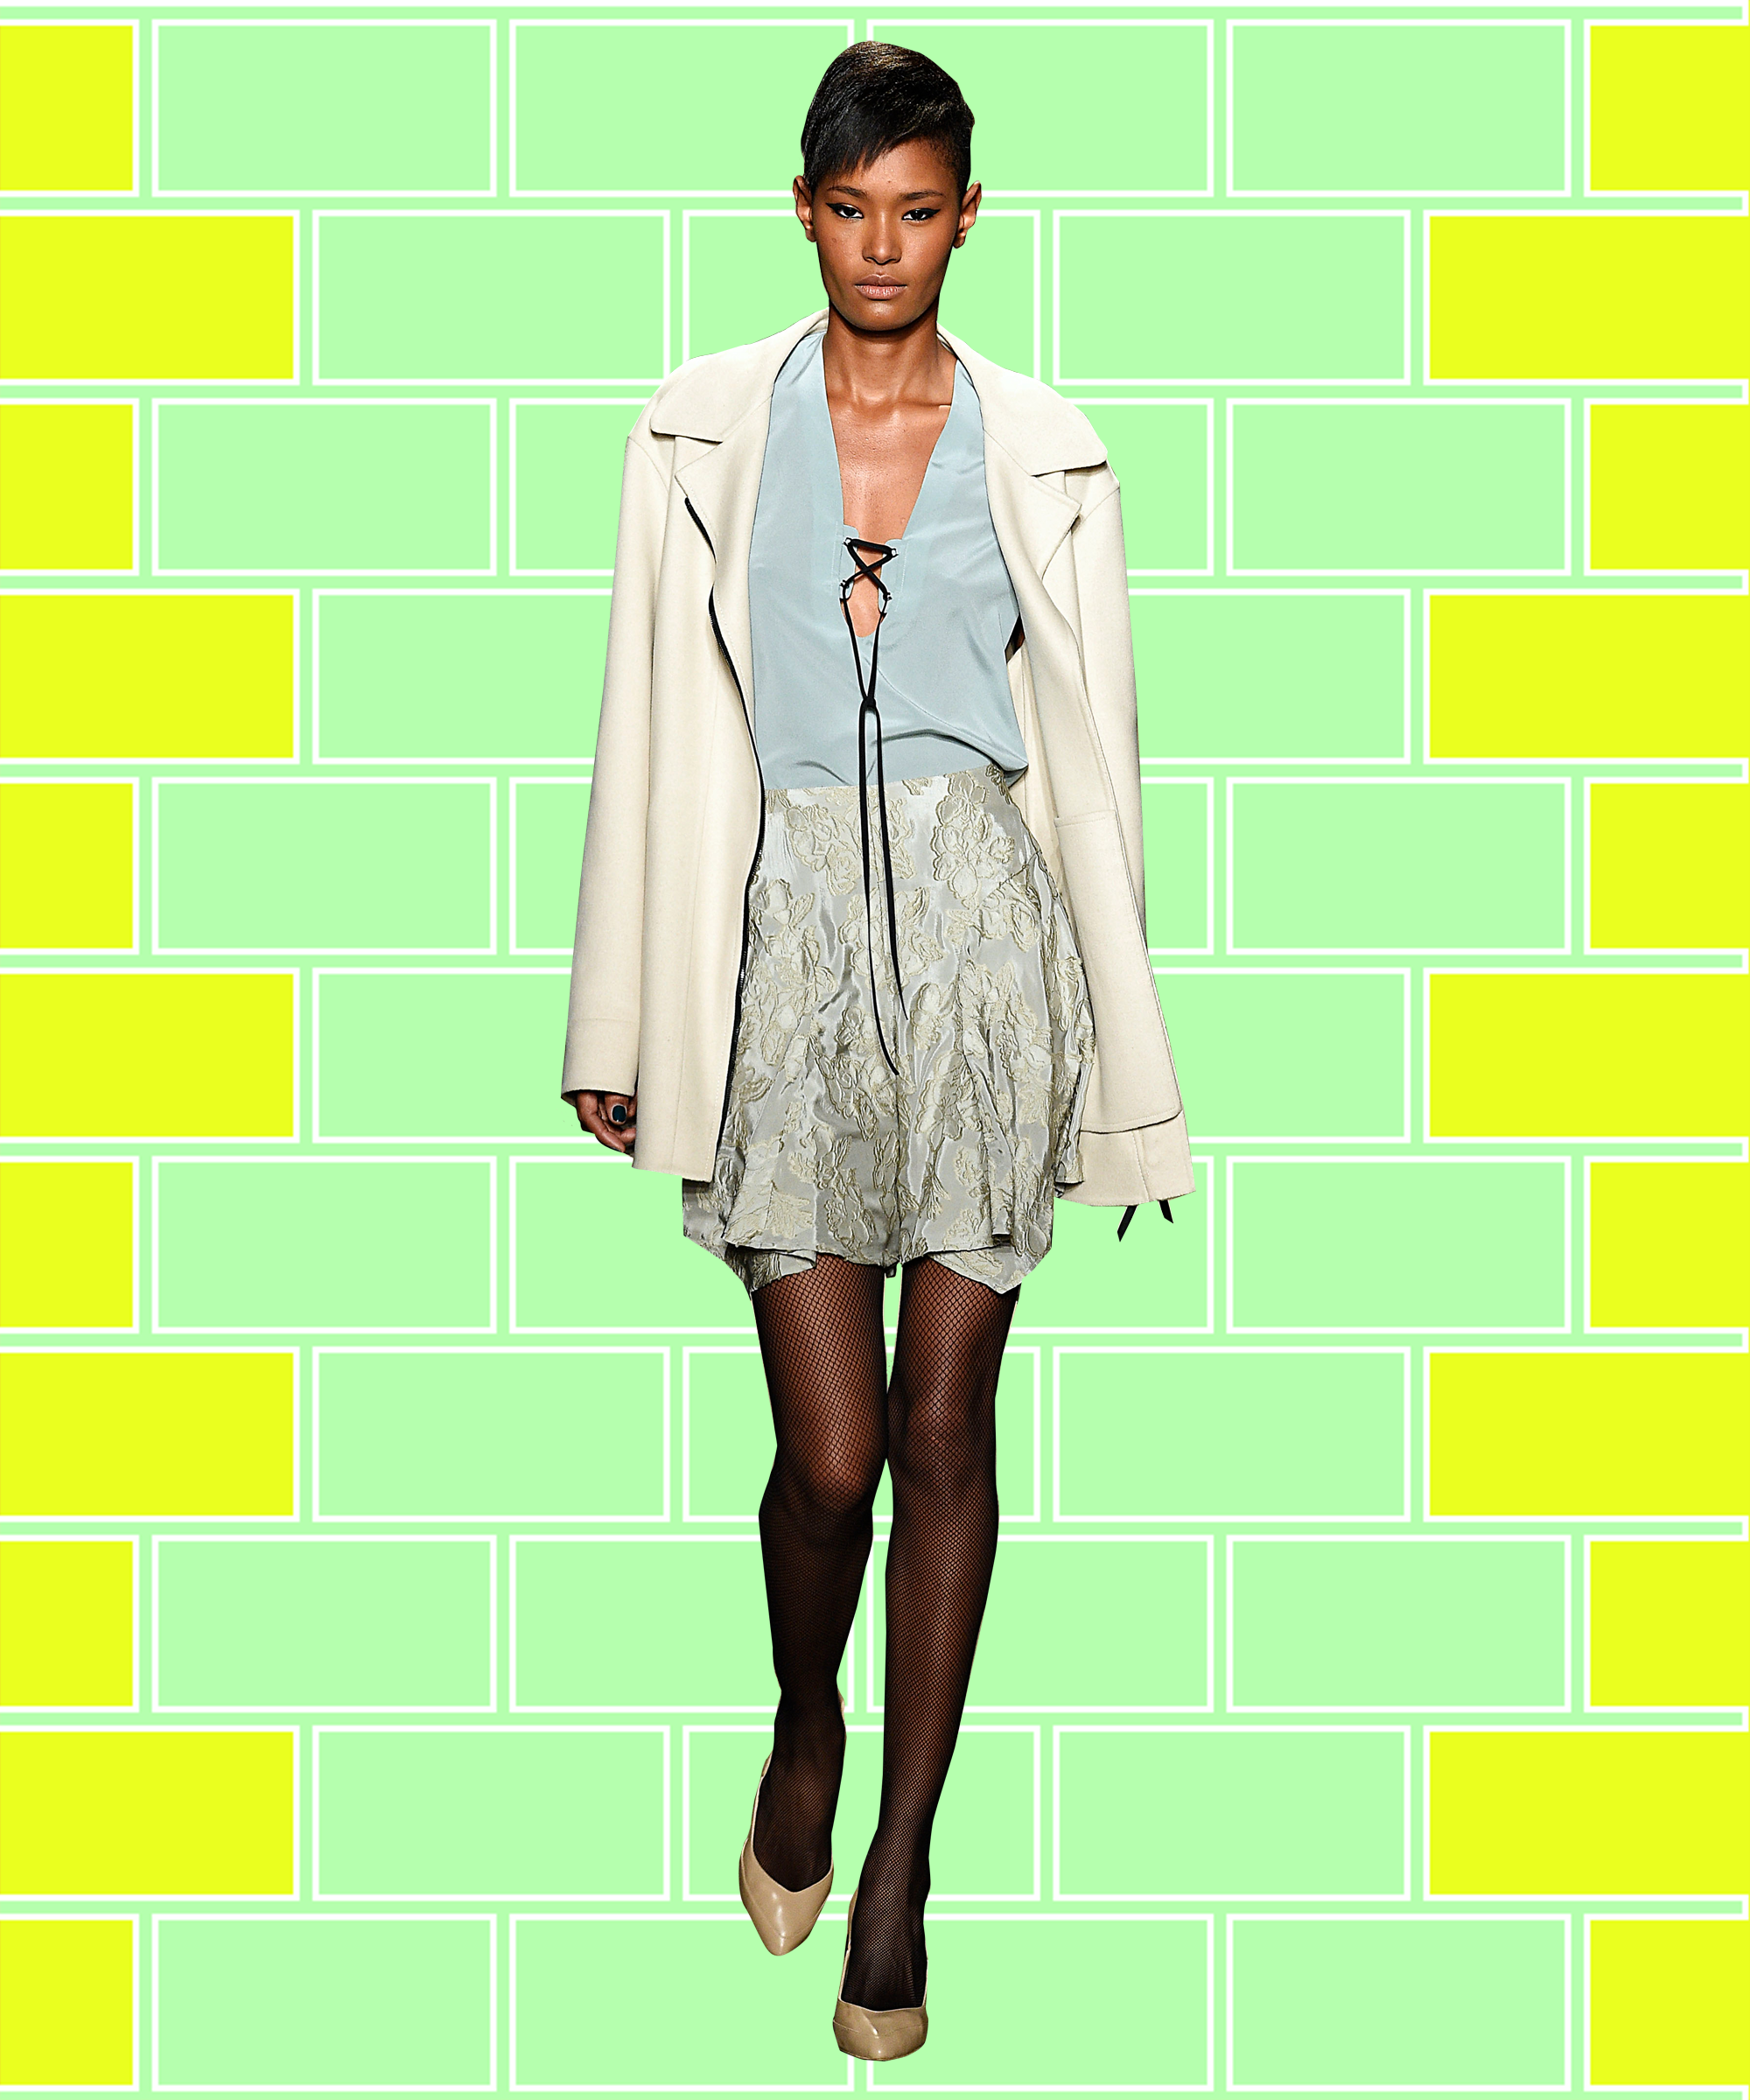 The Fashion Week Trends That WILL Show Up In Fast Fashion